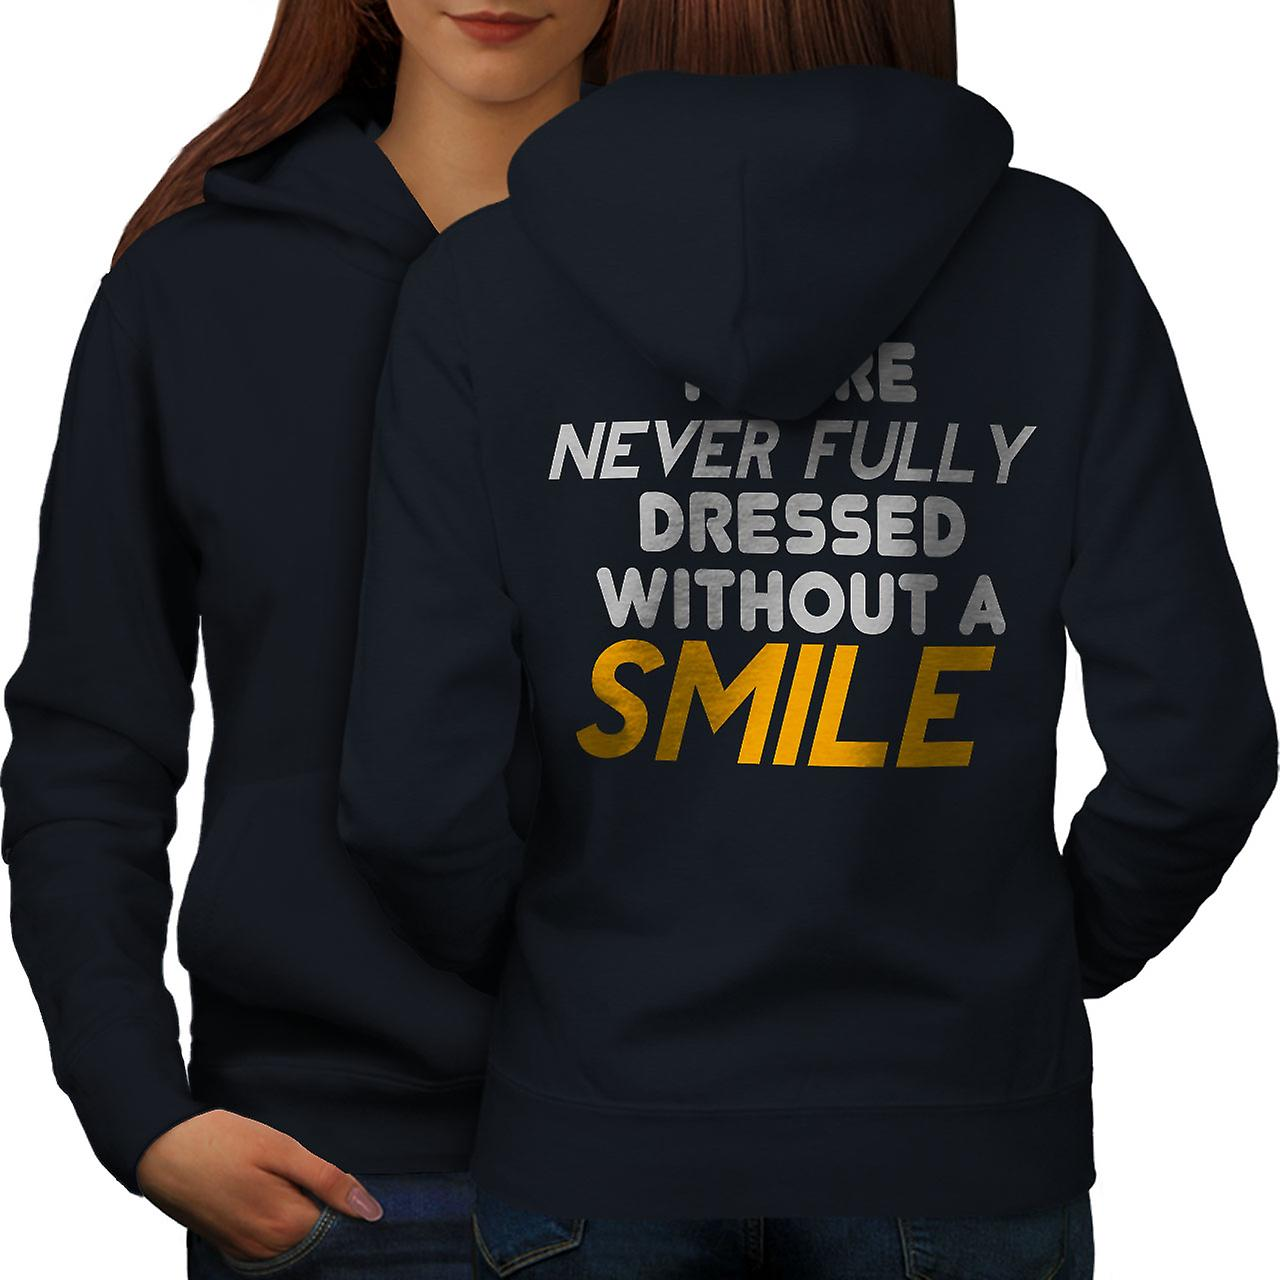 Sourire craquant Slogan femmes NavyHoodie dos